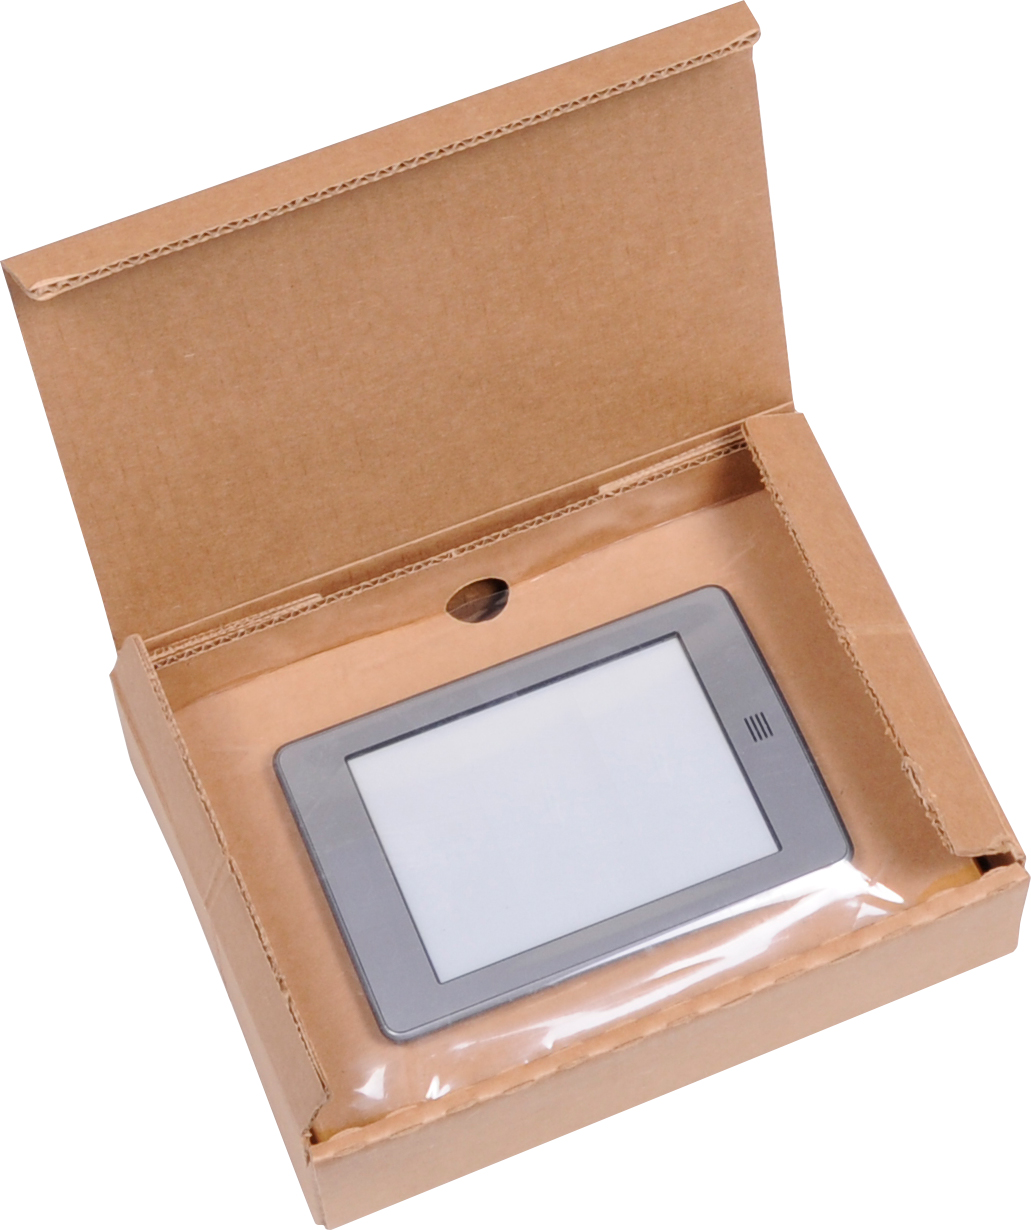 small tablet retention package